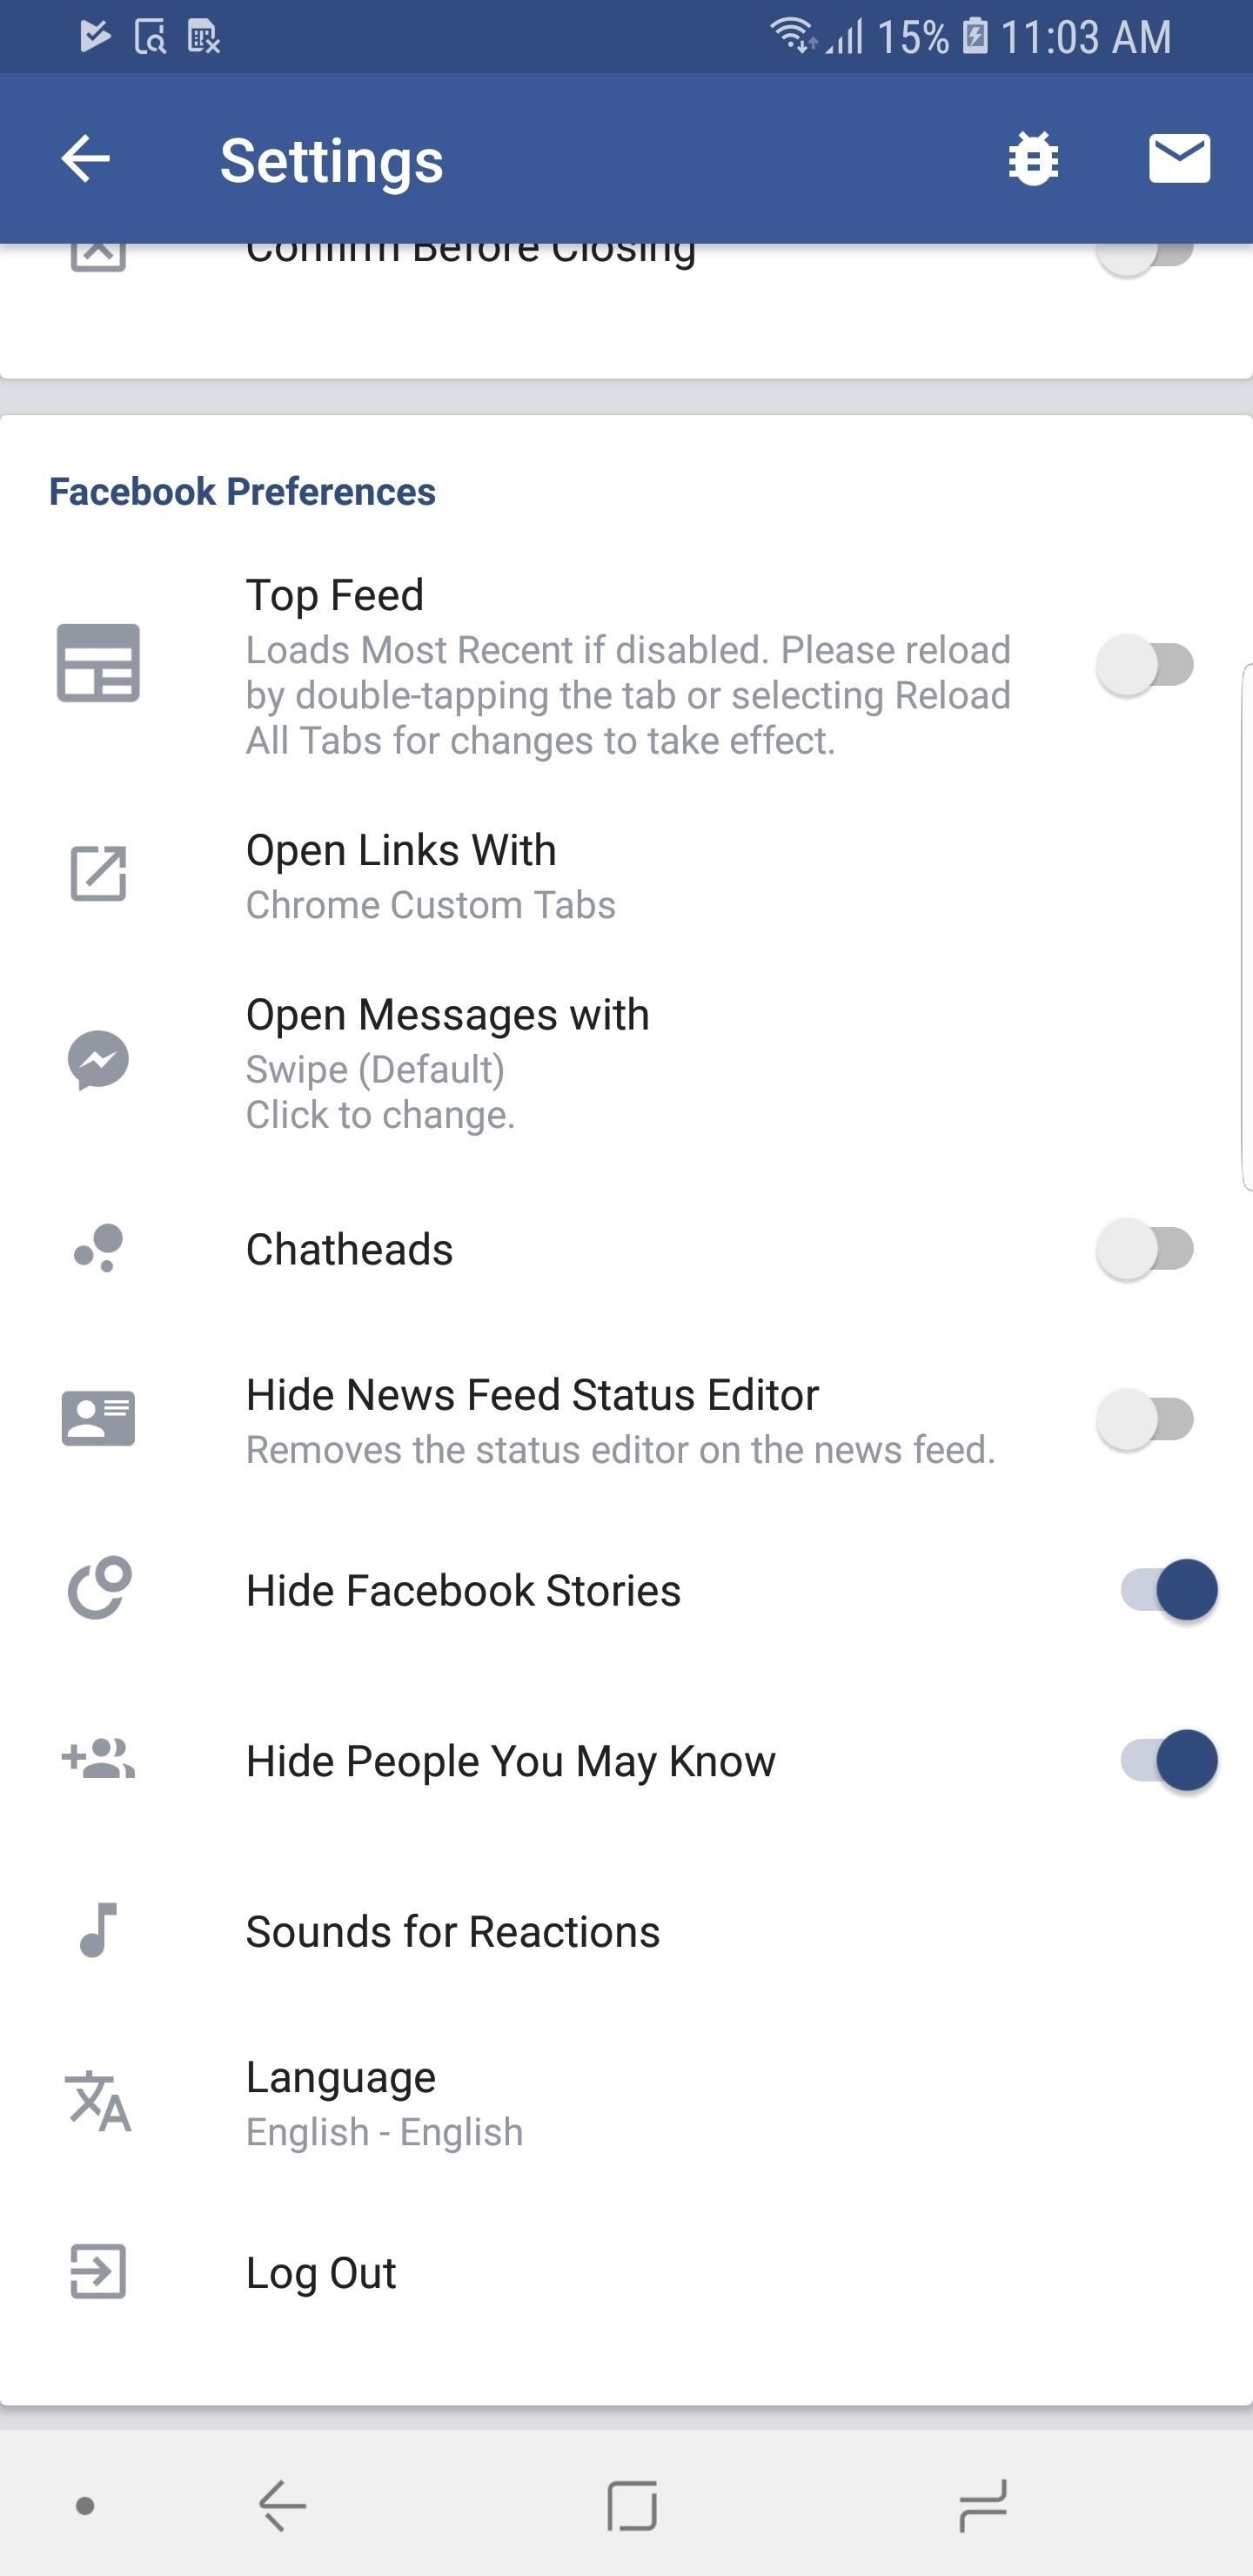 How to Hide Stories in Your Facebook Feed on iPhone or Android